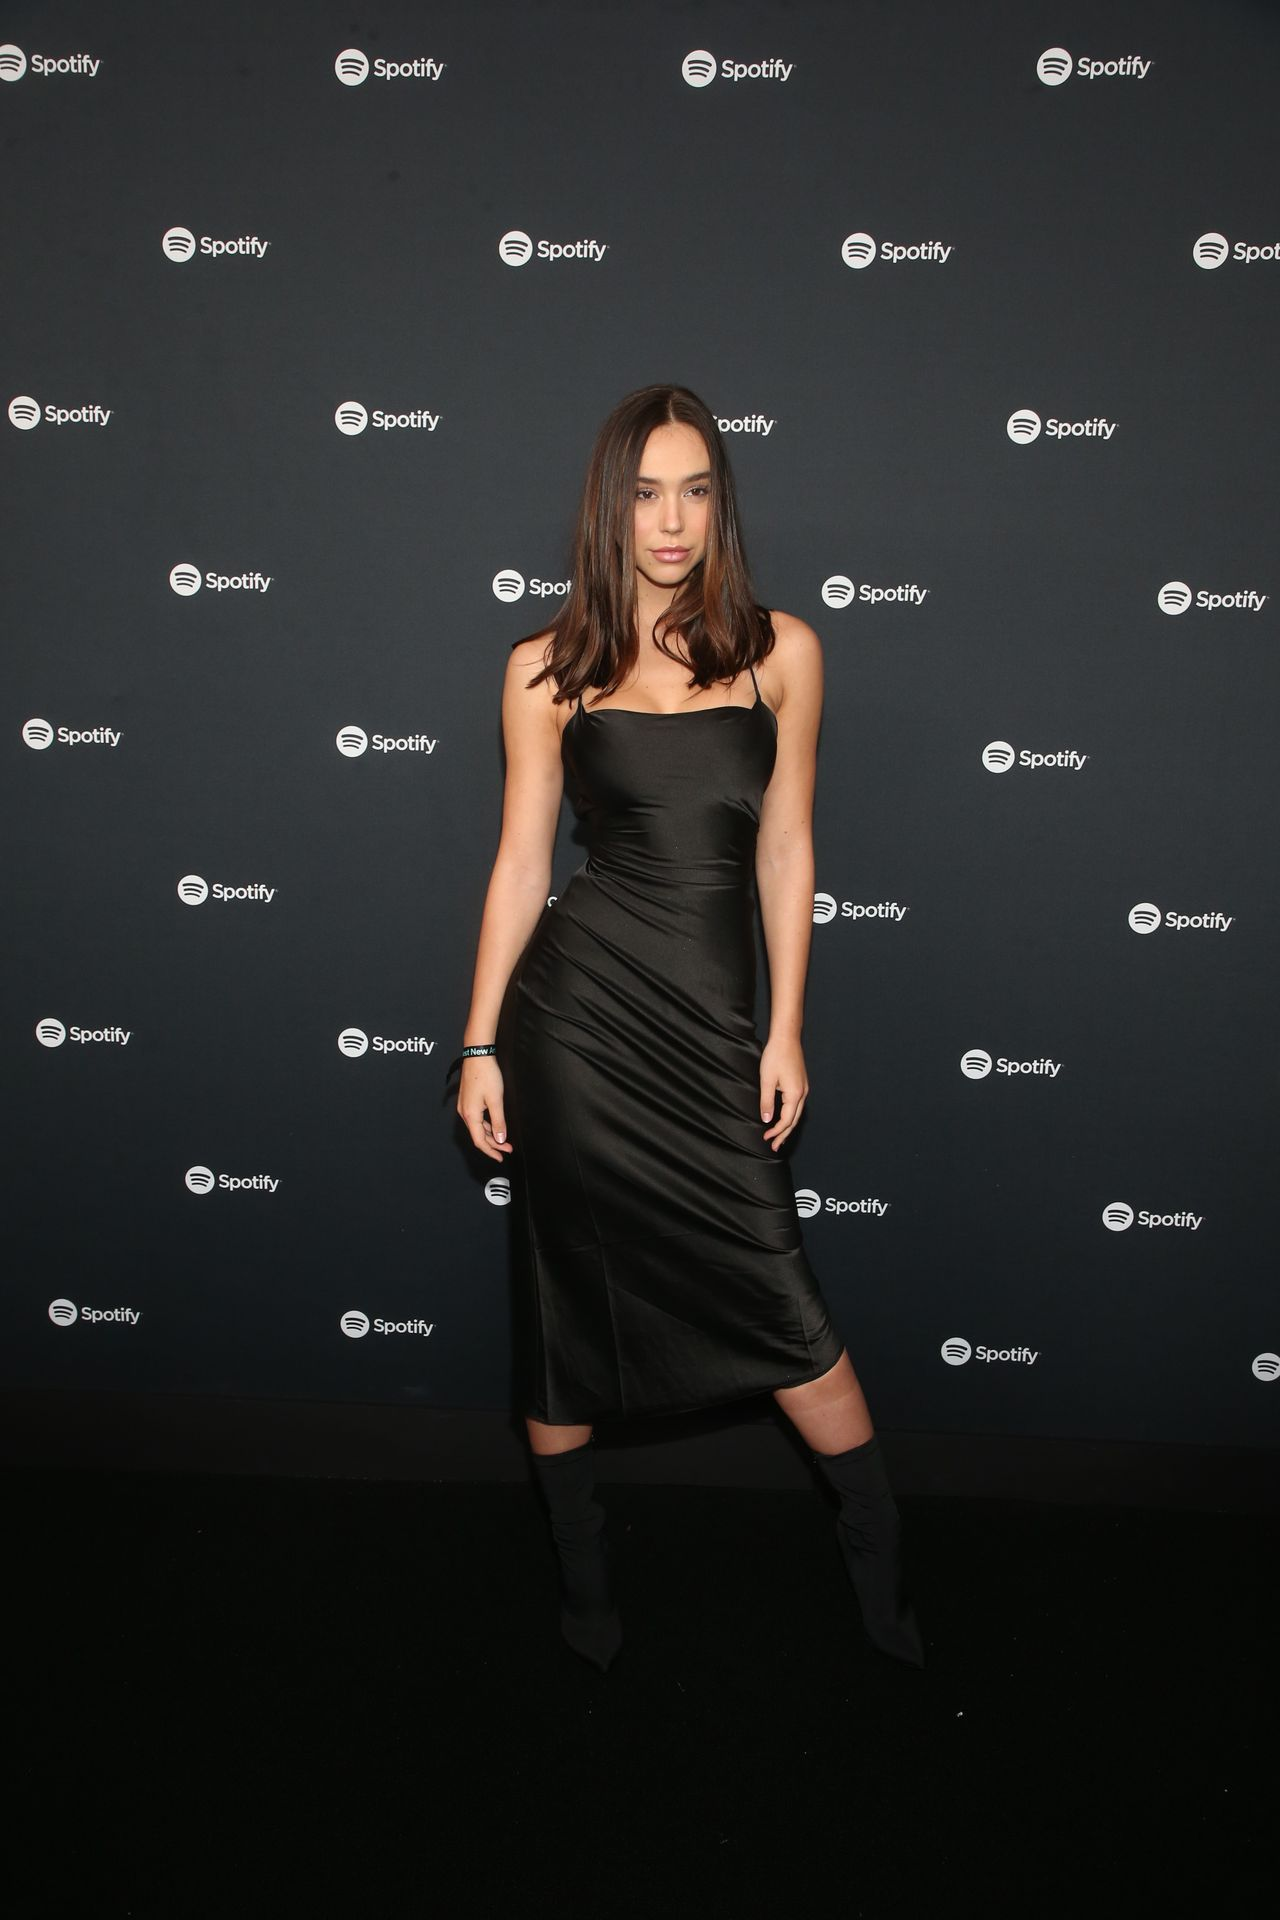 Alexis Ren Shows Off Her Tits At The Spotify Best New Artist Party 0018